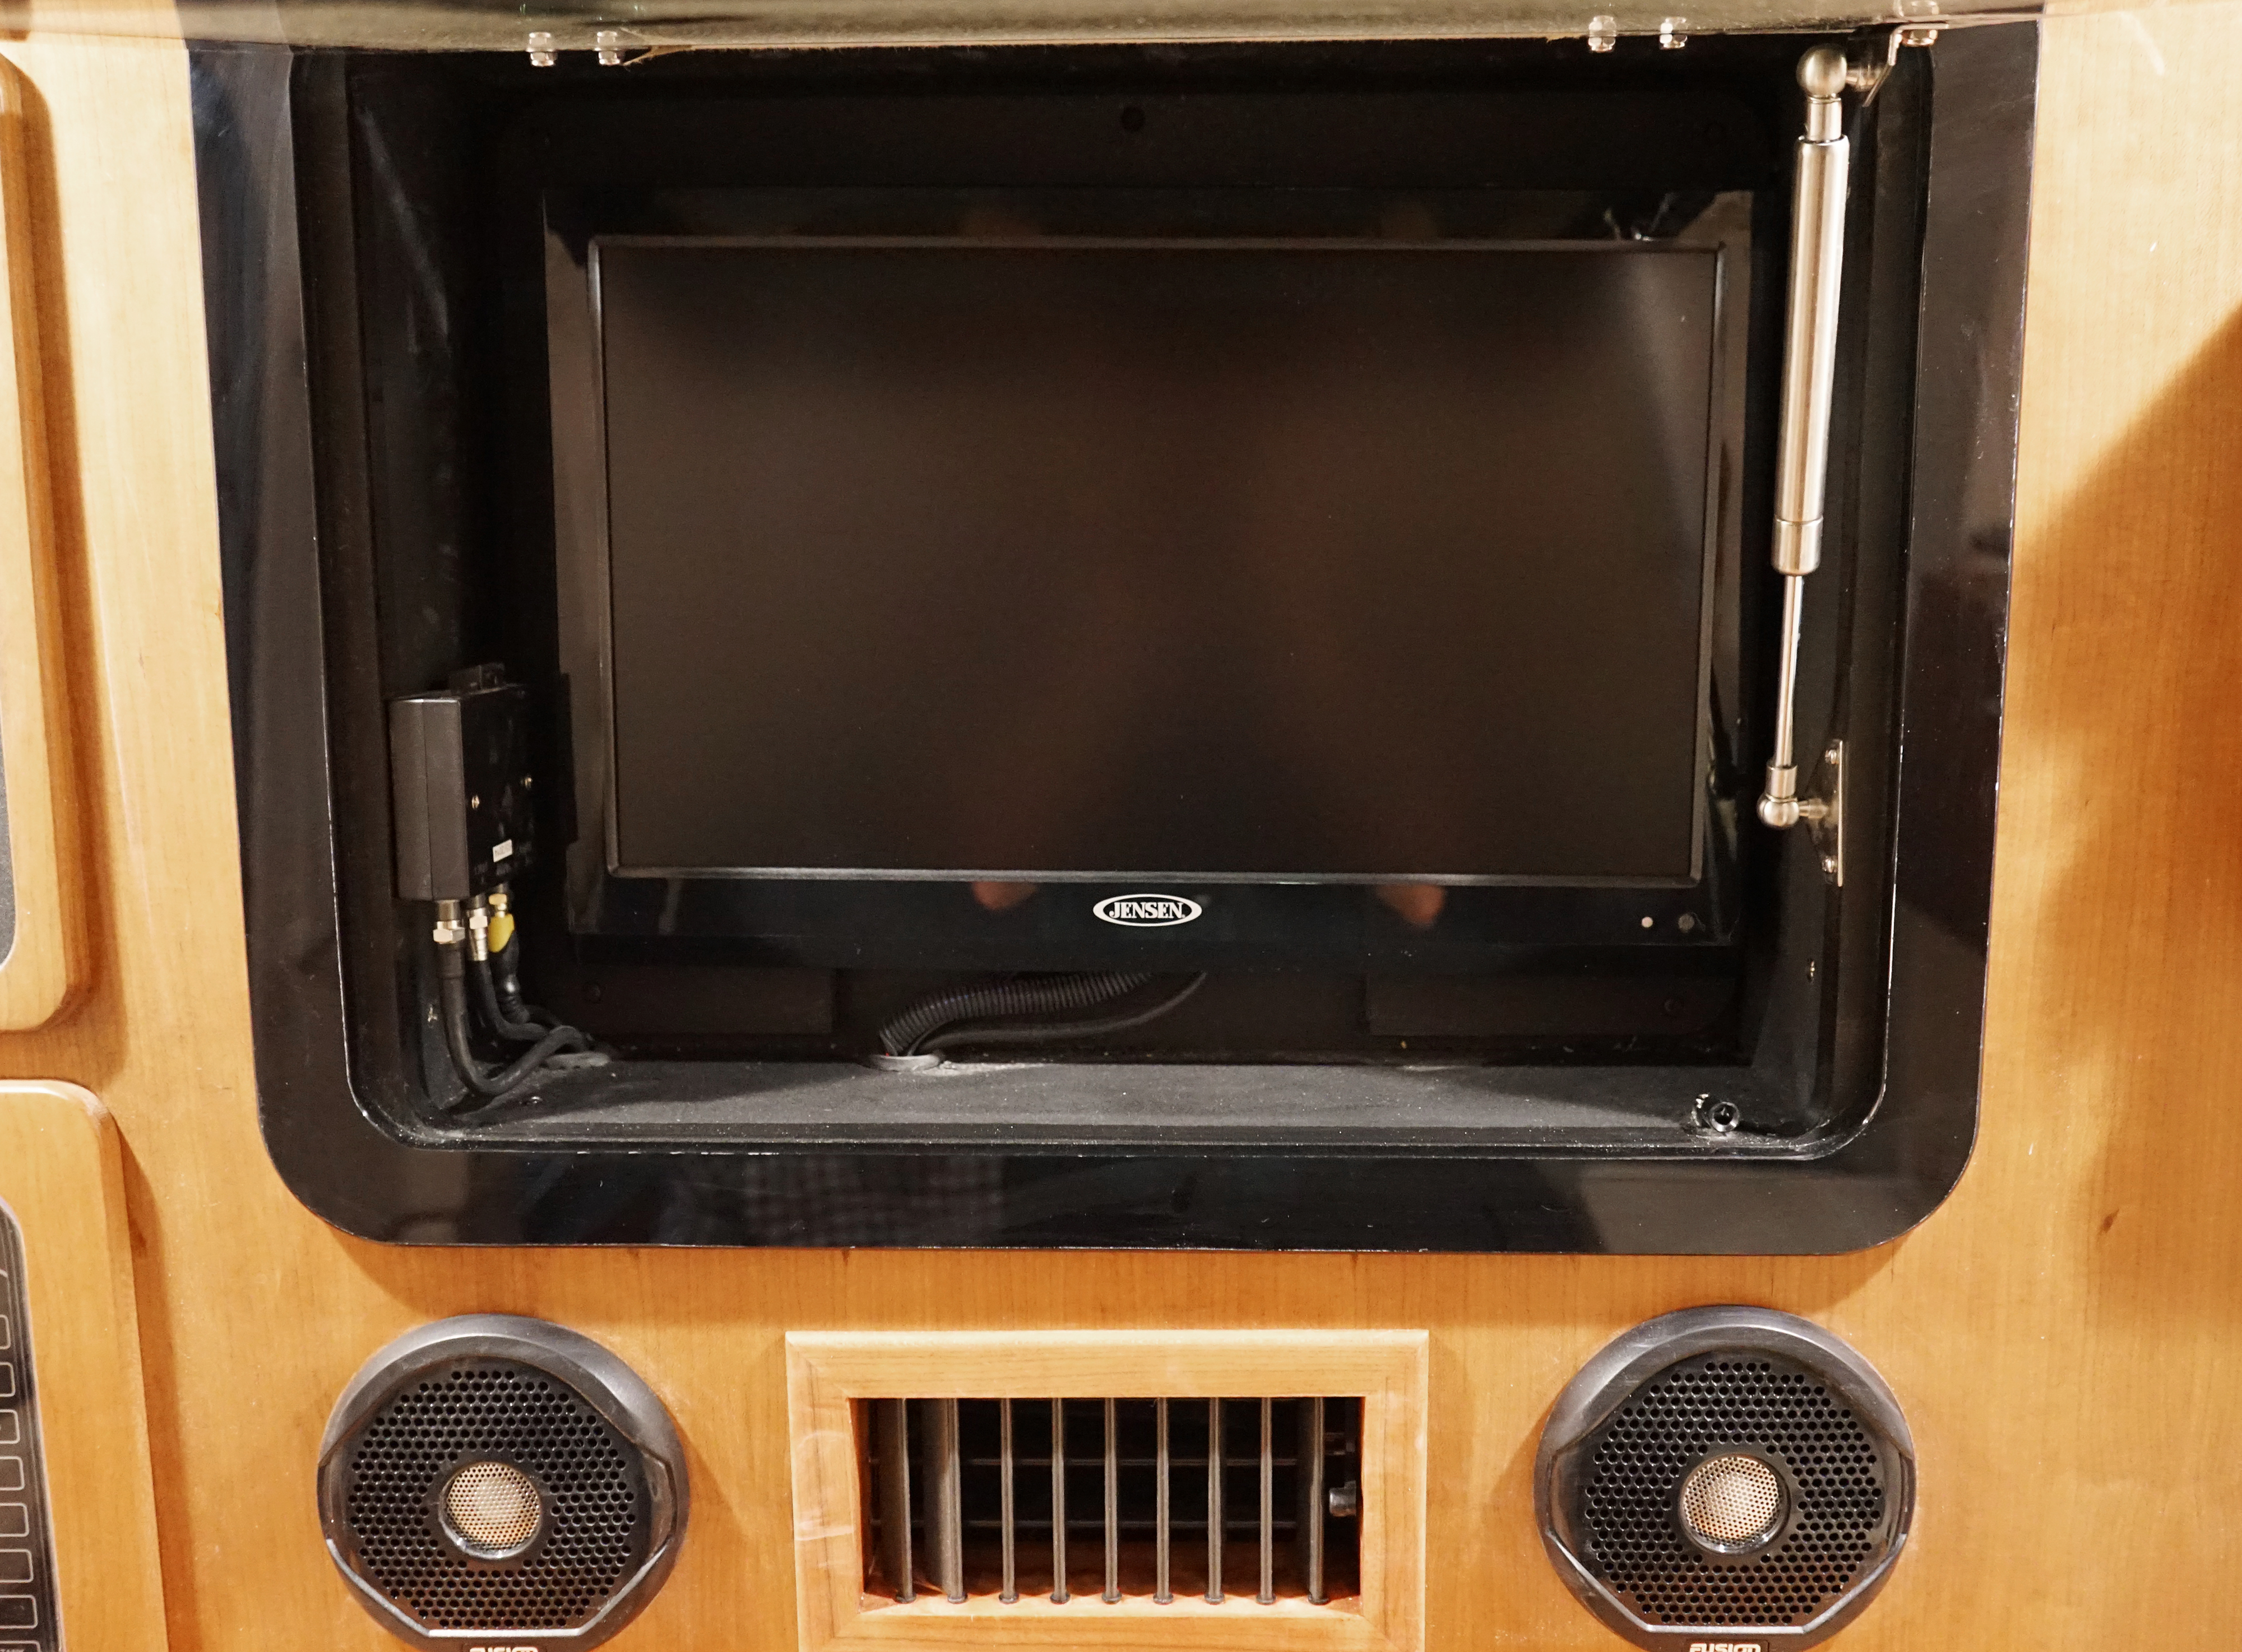 Grady-White Canyon 376, 37-foot center console boat TV in console